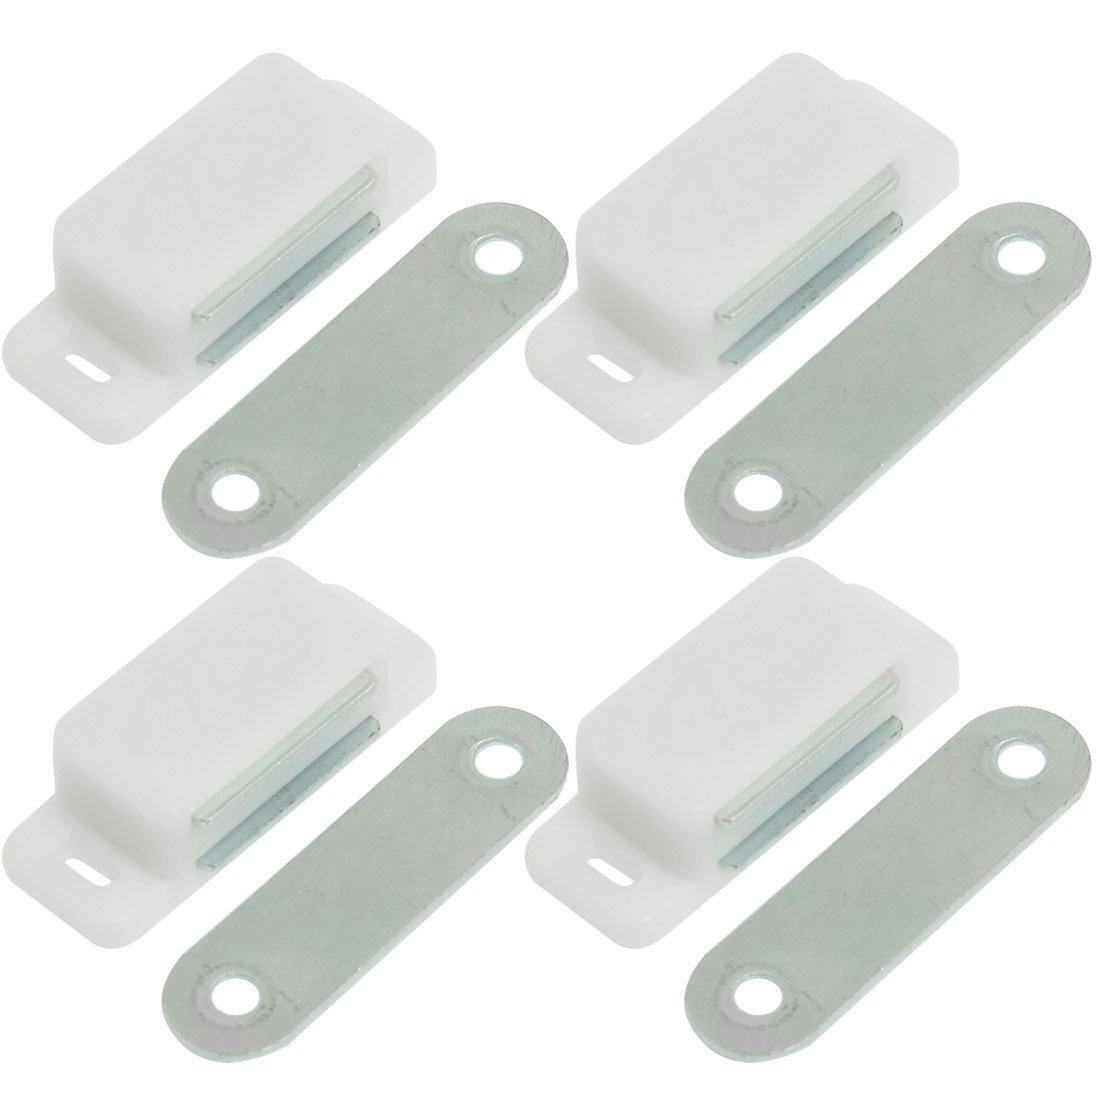 New Style 4 Pcs White Plastic Shell Magnetic Metal Catch Latch Plate for Cupboard Cabinet push to open beetles drawer cabinet latch catch touch release kitchen cupboard new arrival high quality